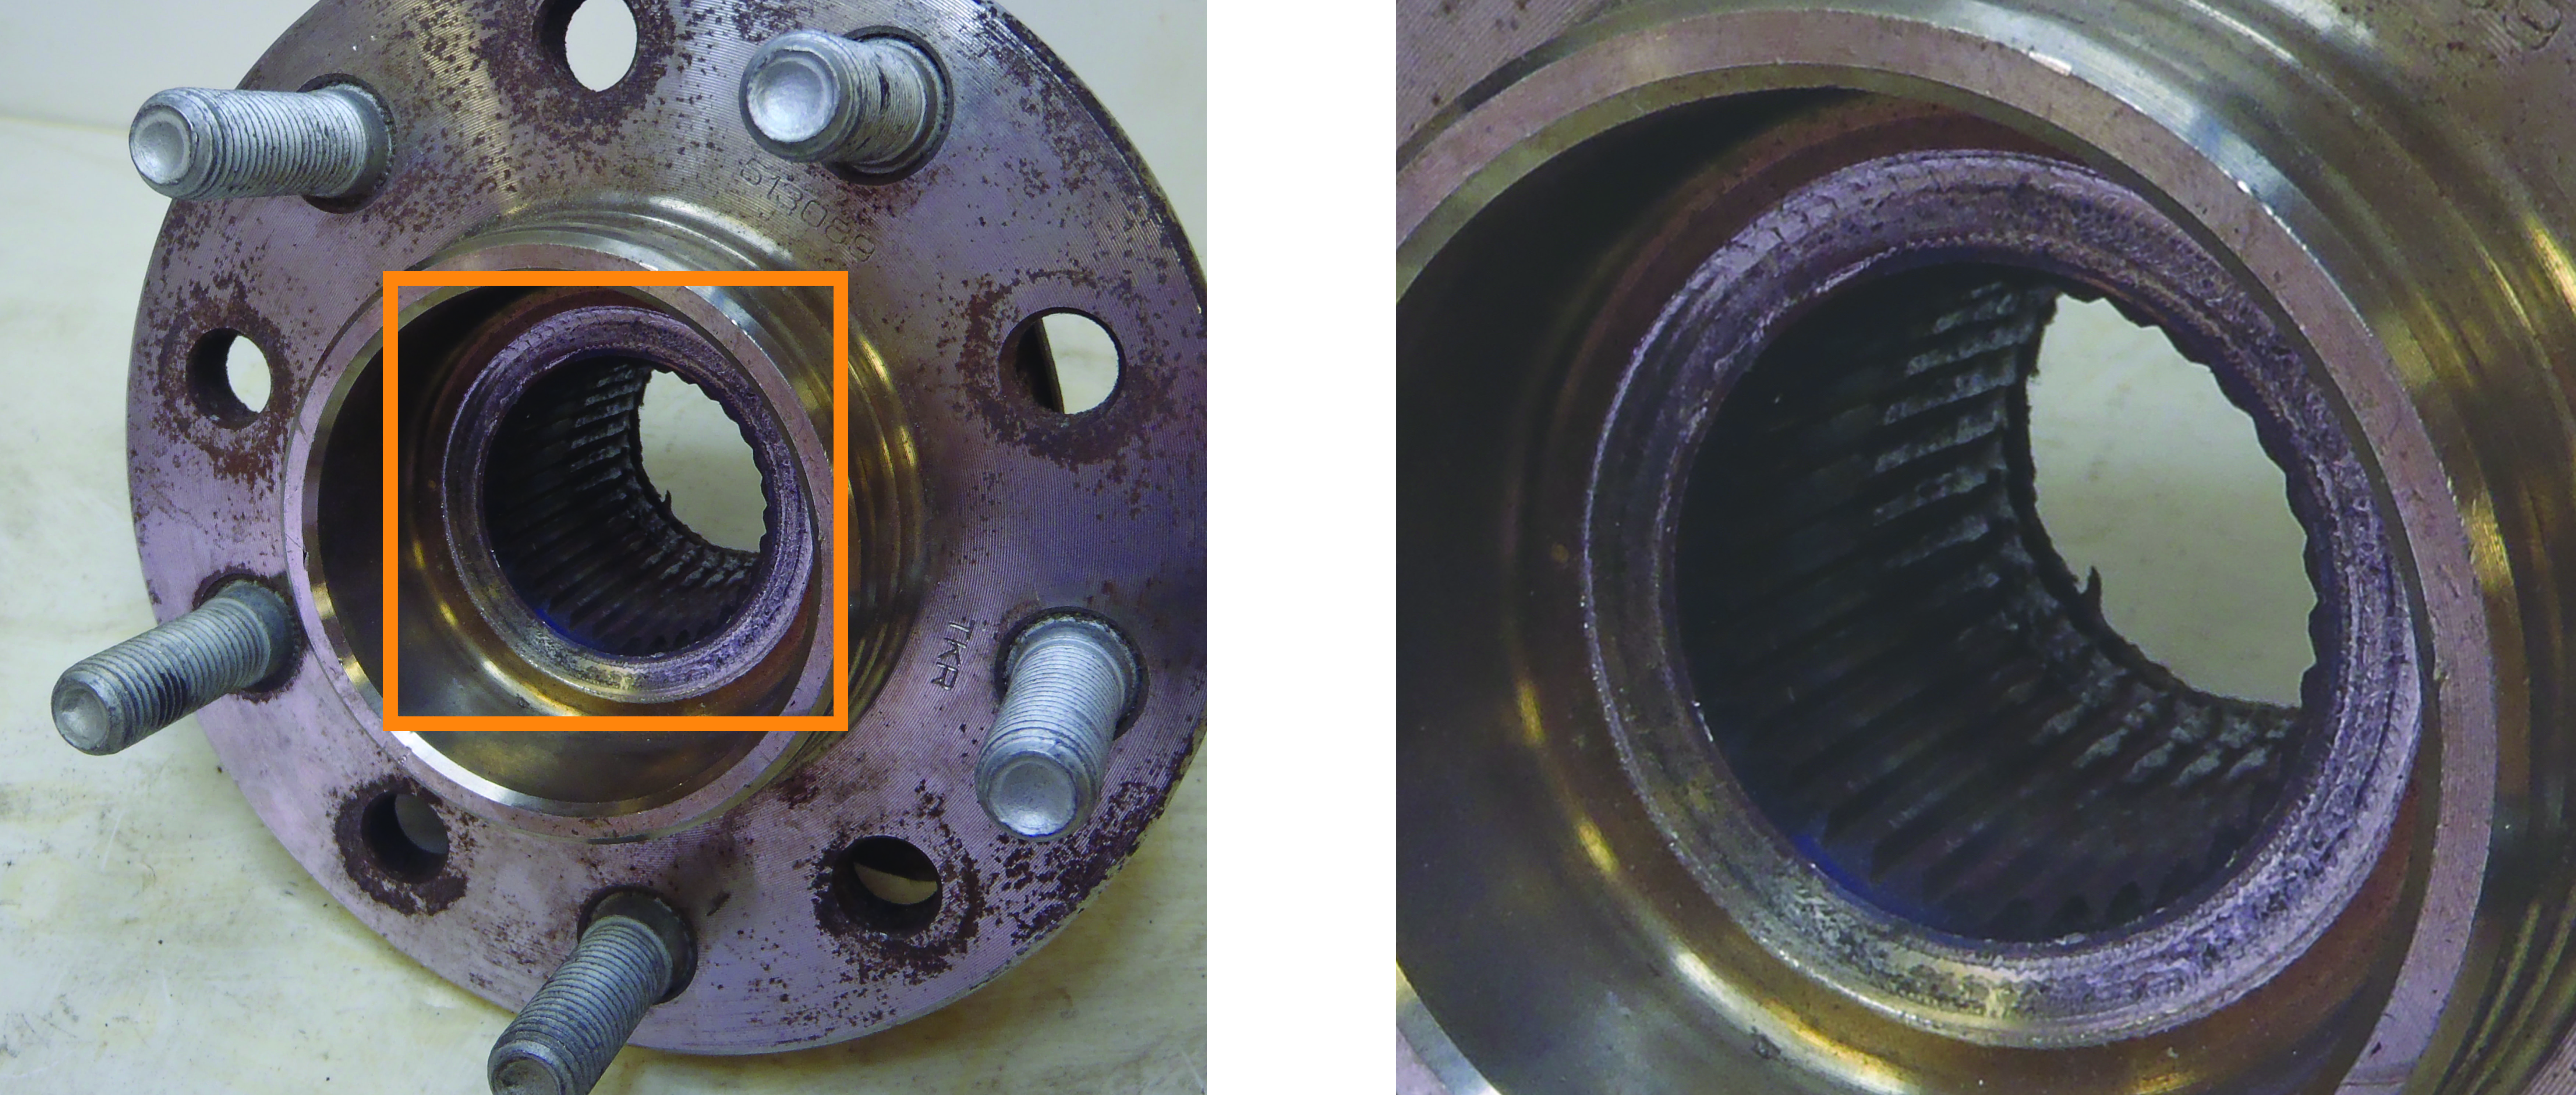 Wheel Hub and Bearing Damage Analysis Guide - Know Your Parts